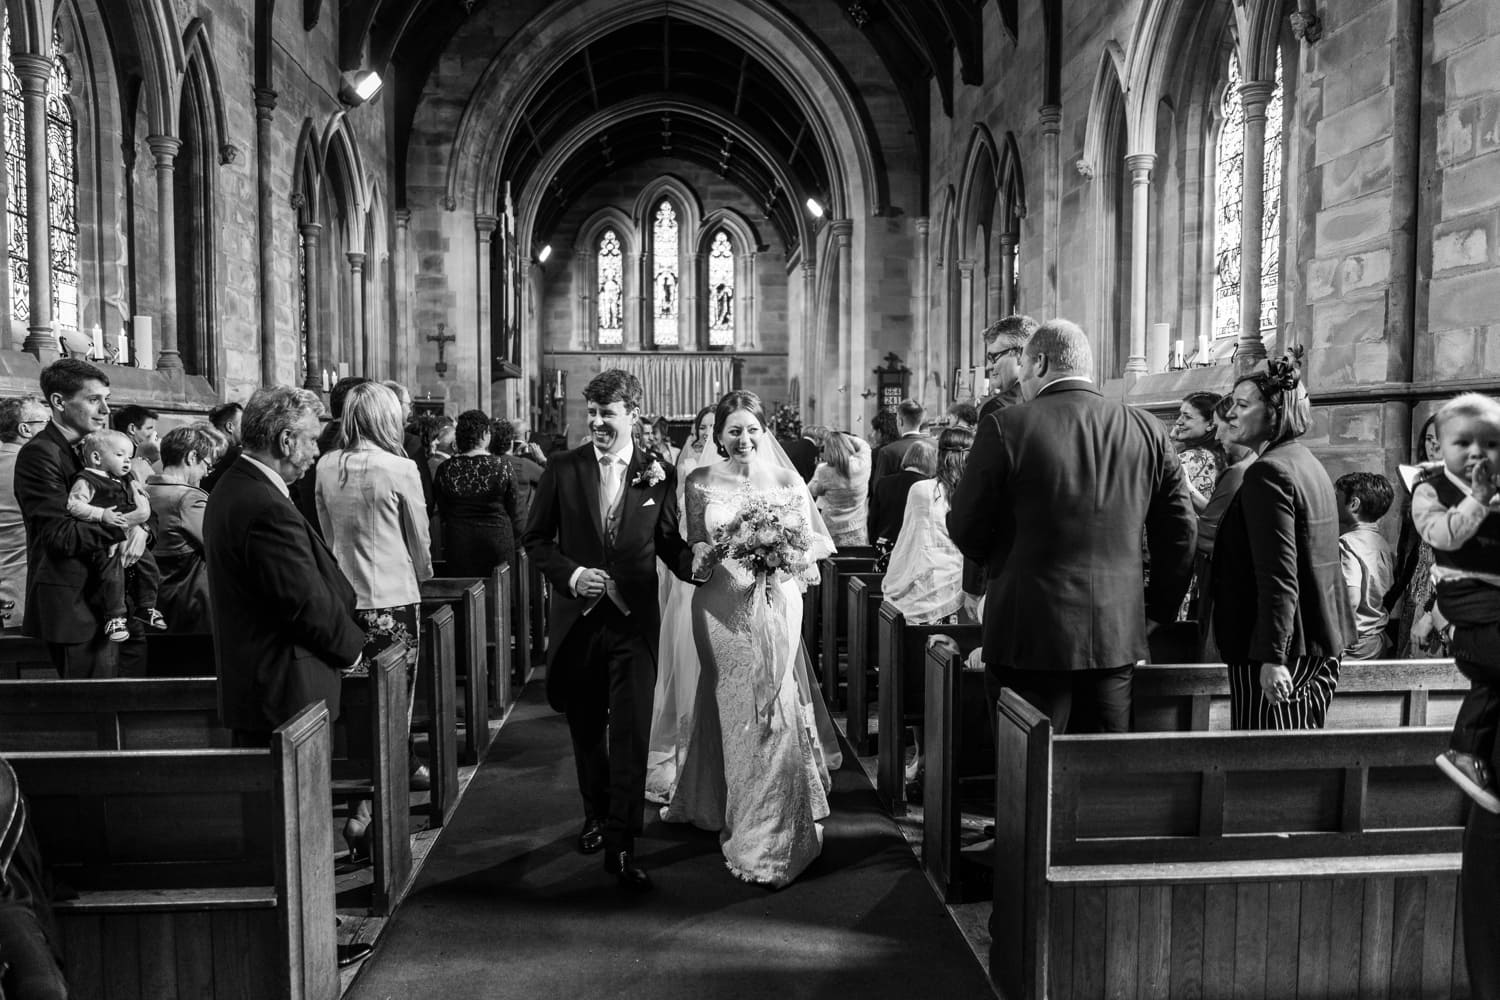 bride & groom walking down aisle at St David's Church in Miskin, South Wales